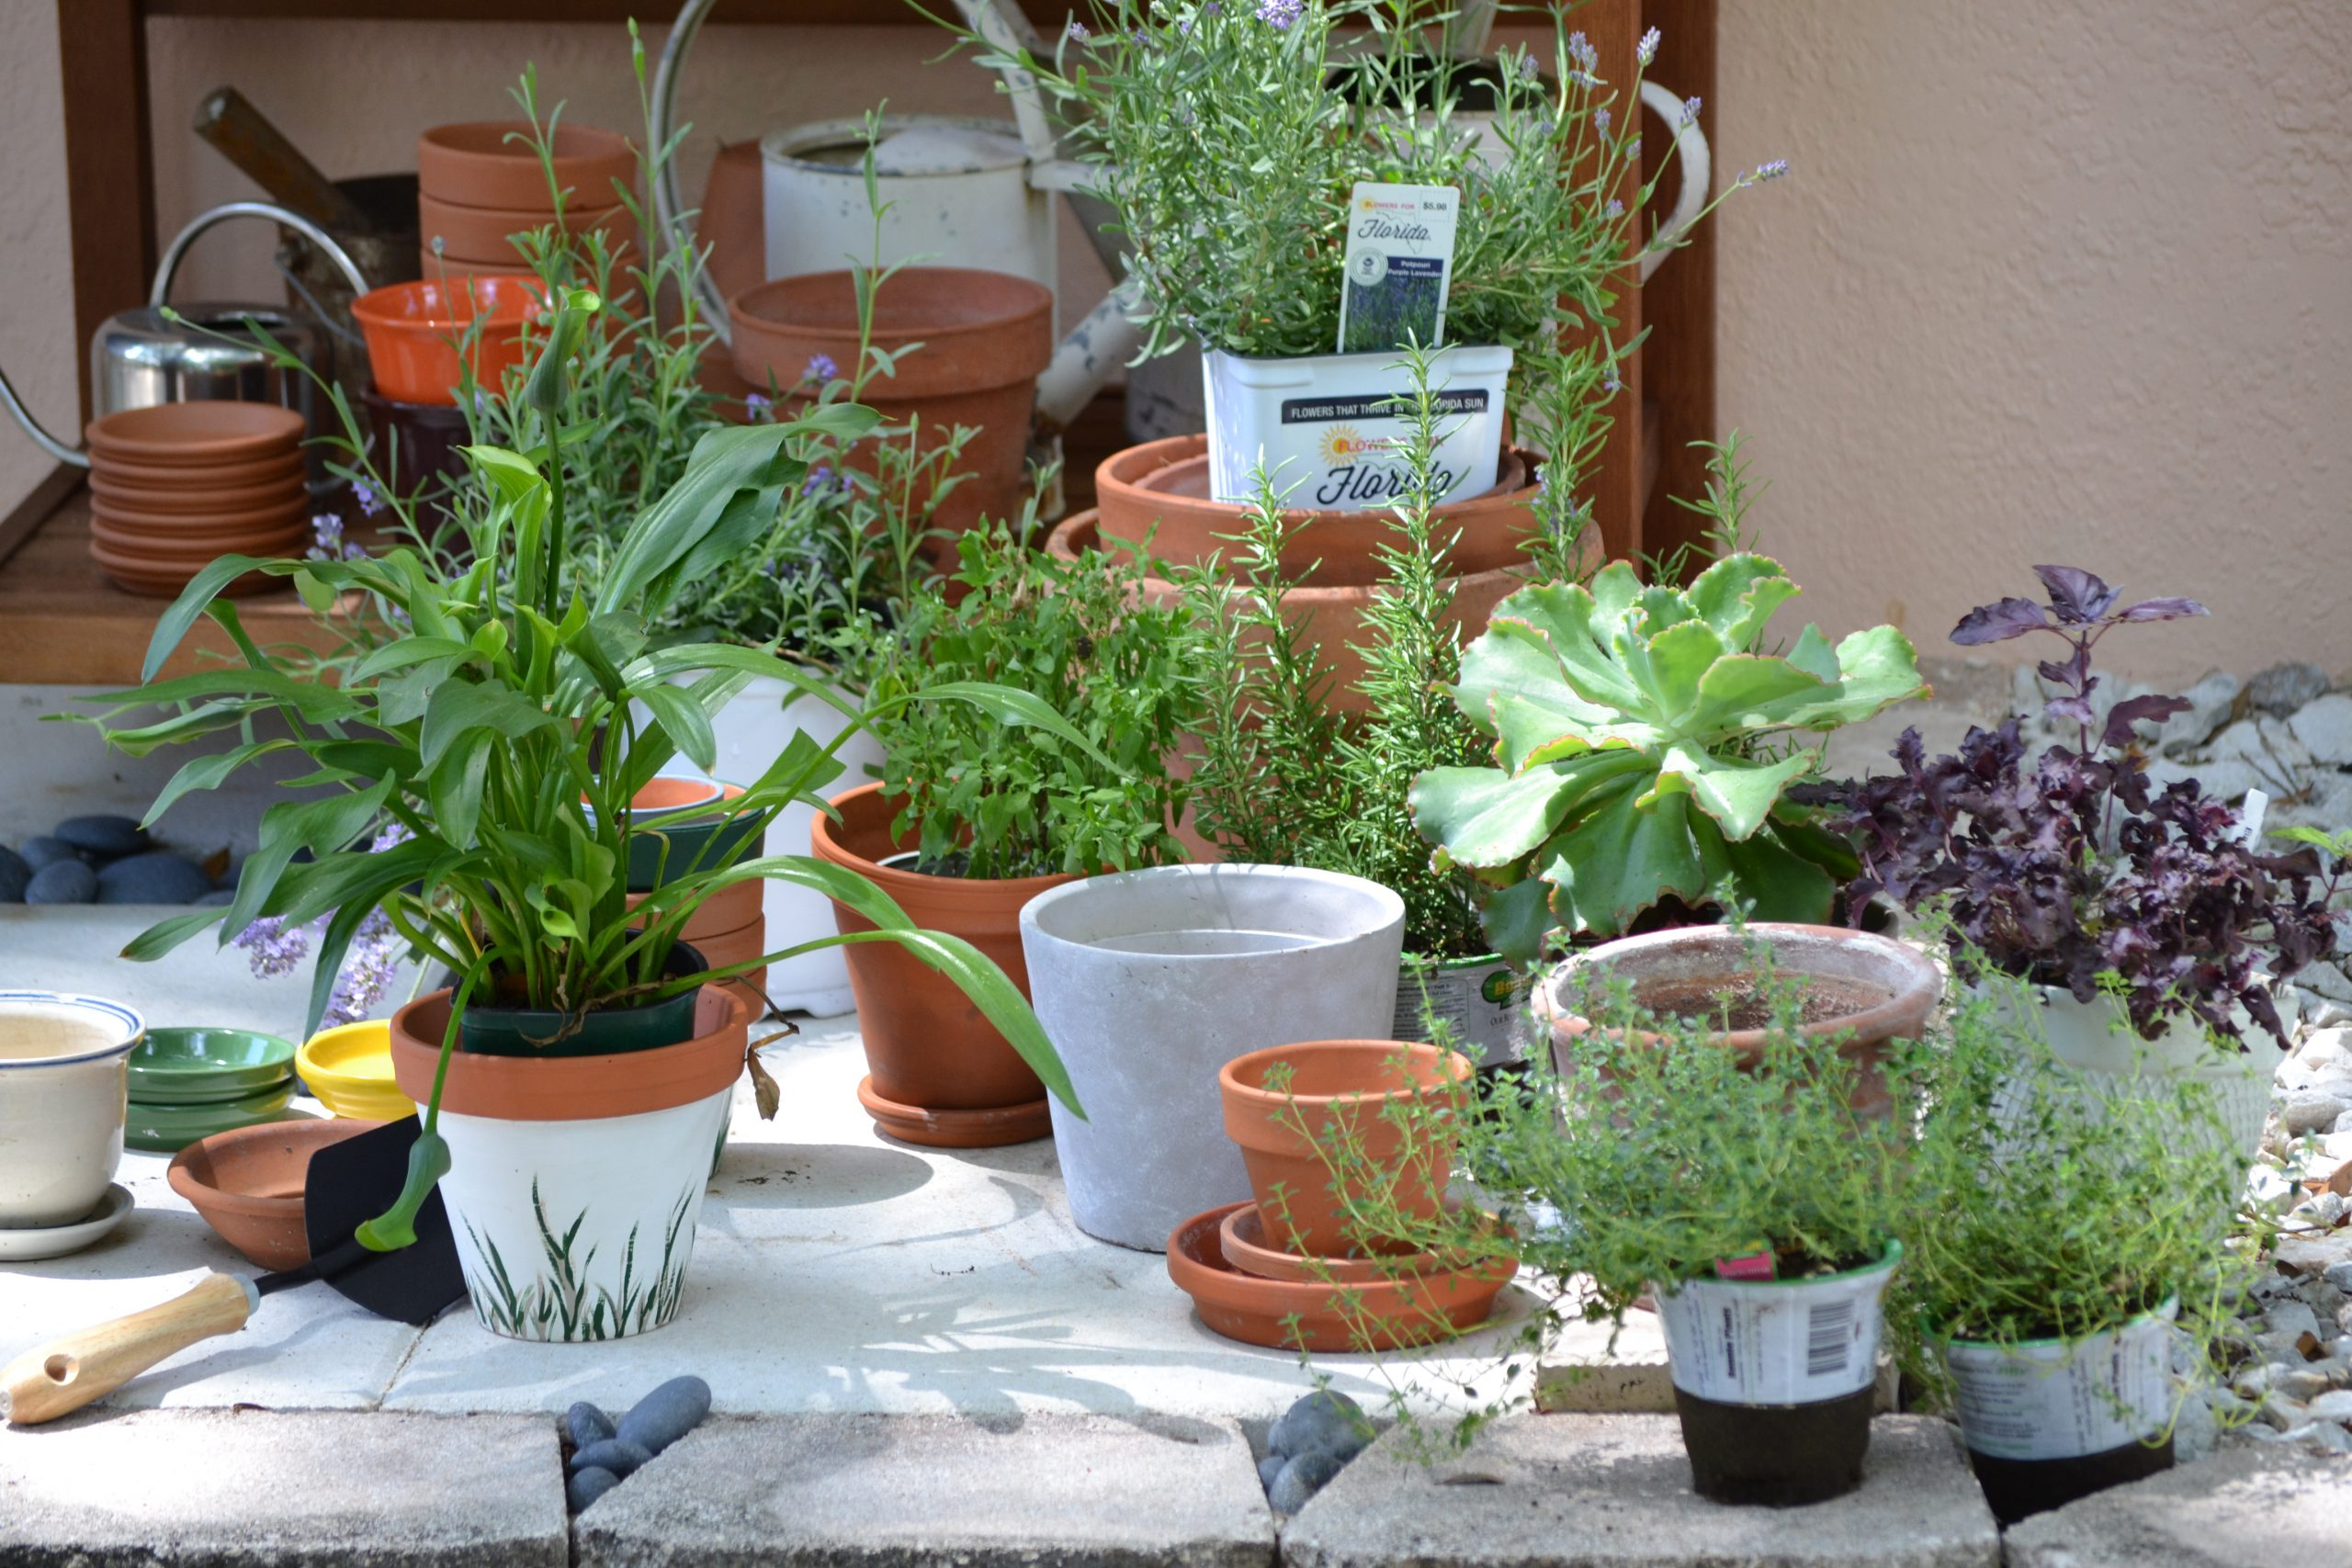 Potting Bench Gifts of Herbs, Flowers, and Food